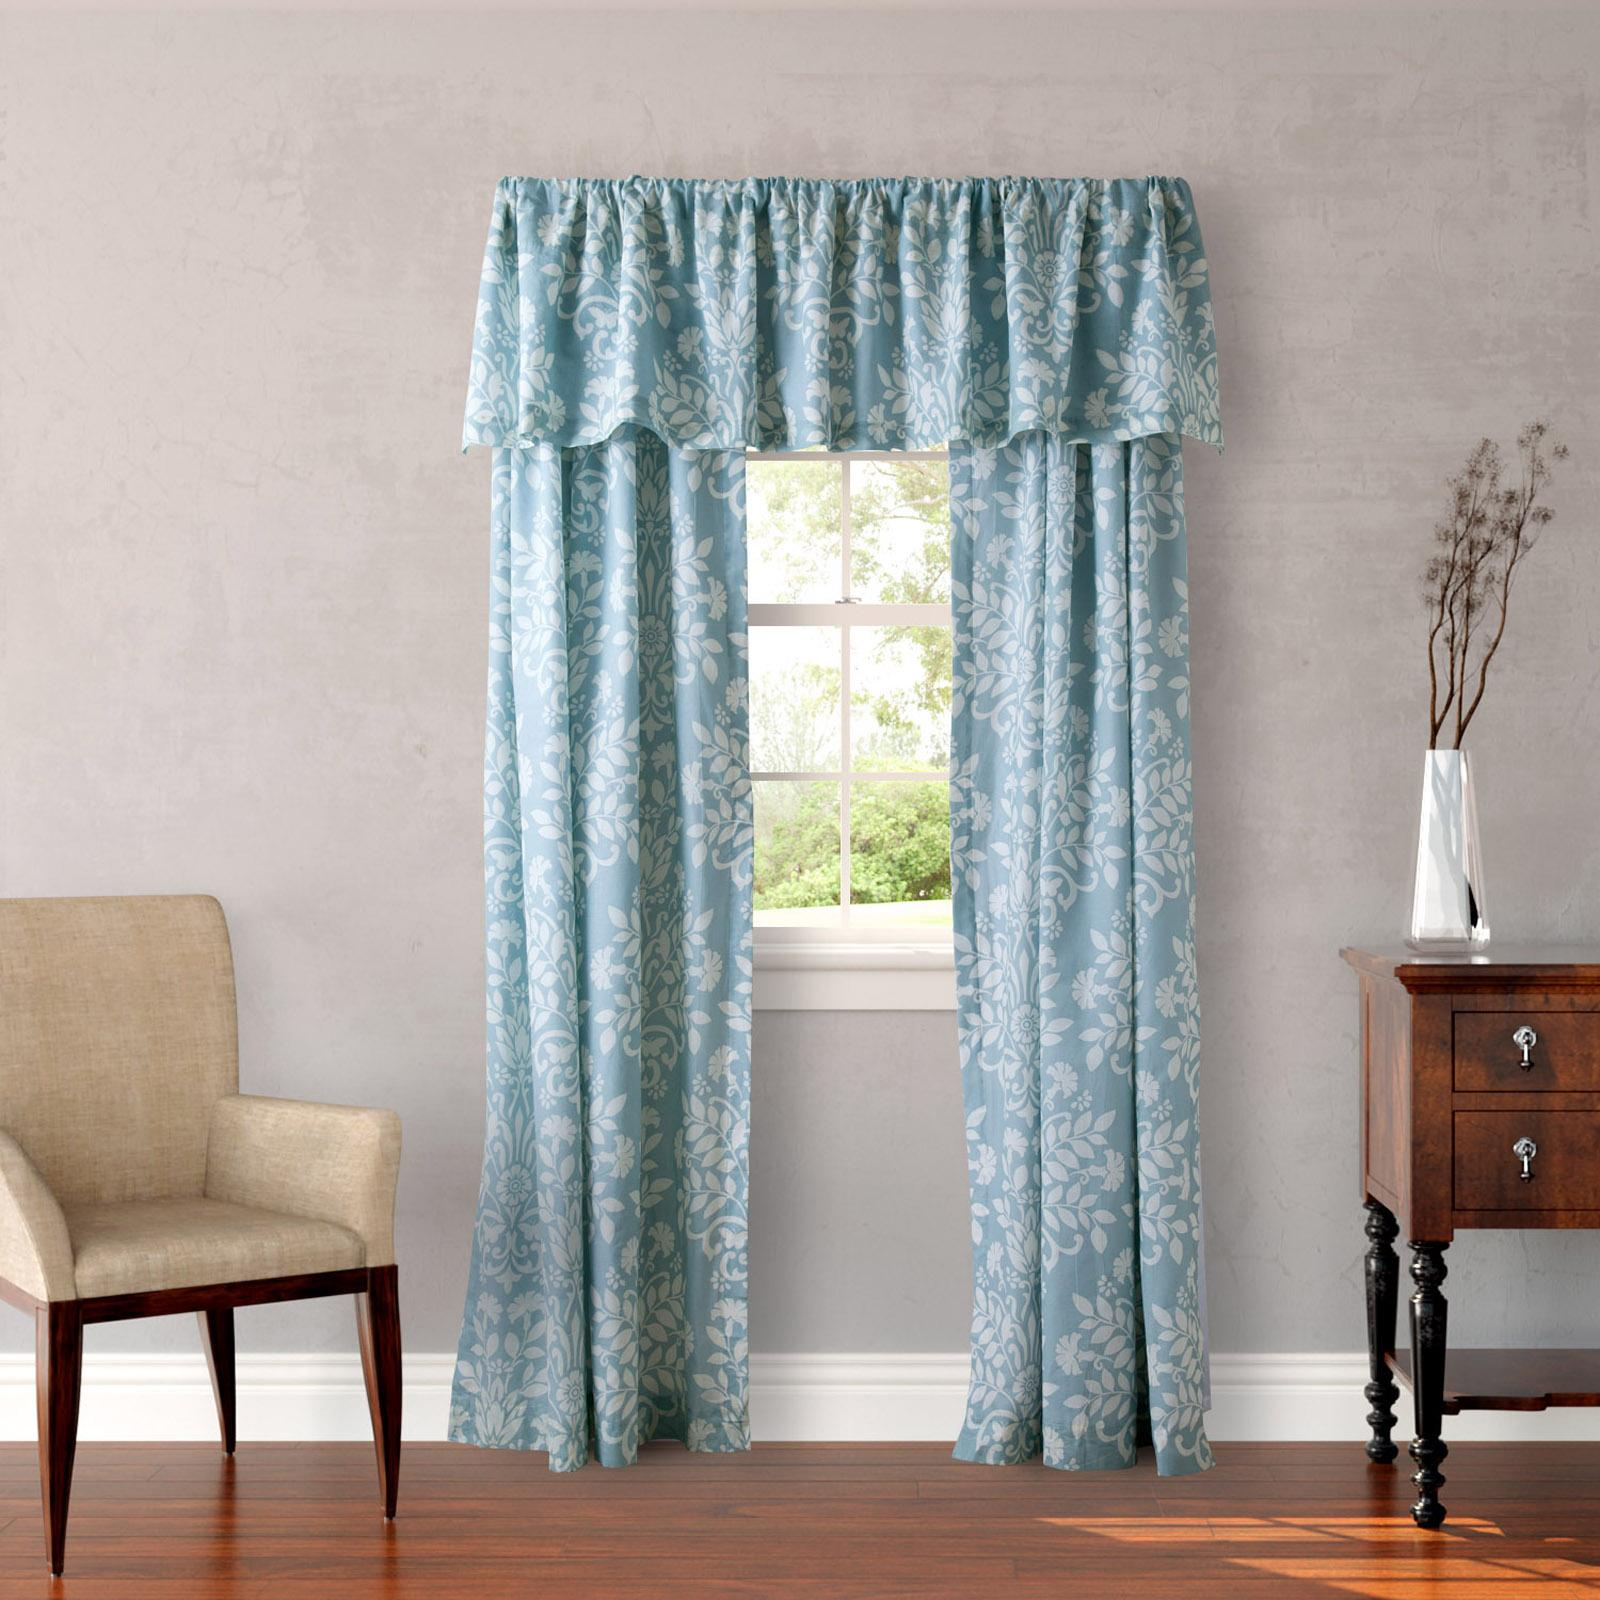 Laura Ashley Rowland 4 Piece Lined Window Panel Set Blue - 209903